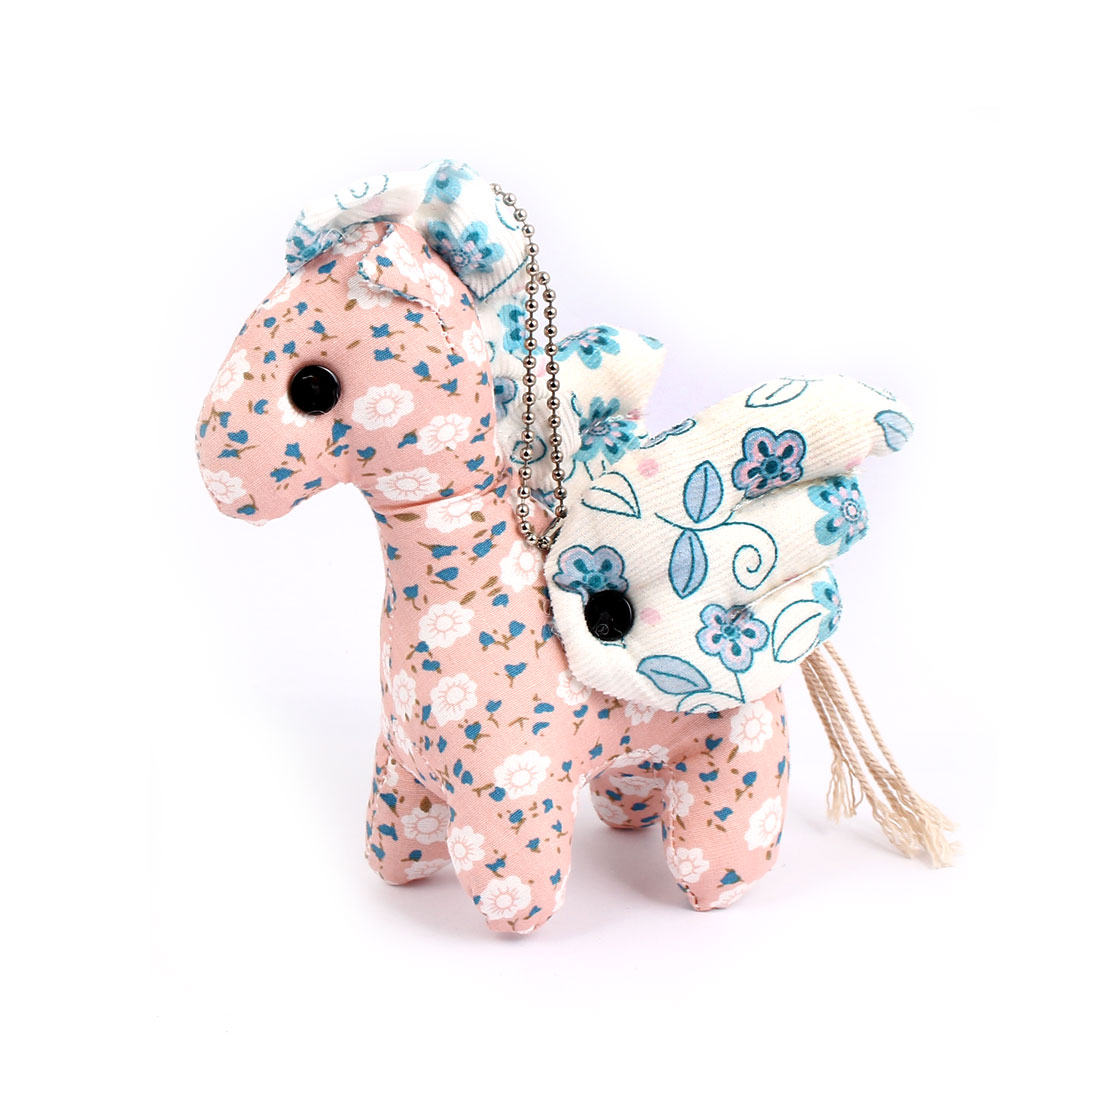 Metal Ball Chain Flower Pattern Bag Decoration Winged Horse Doll Toy Pendant Pink